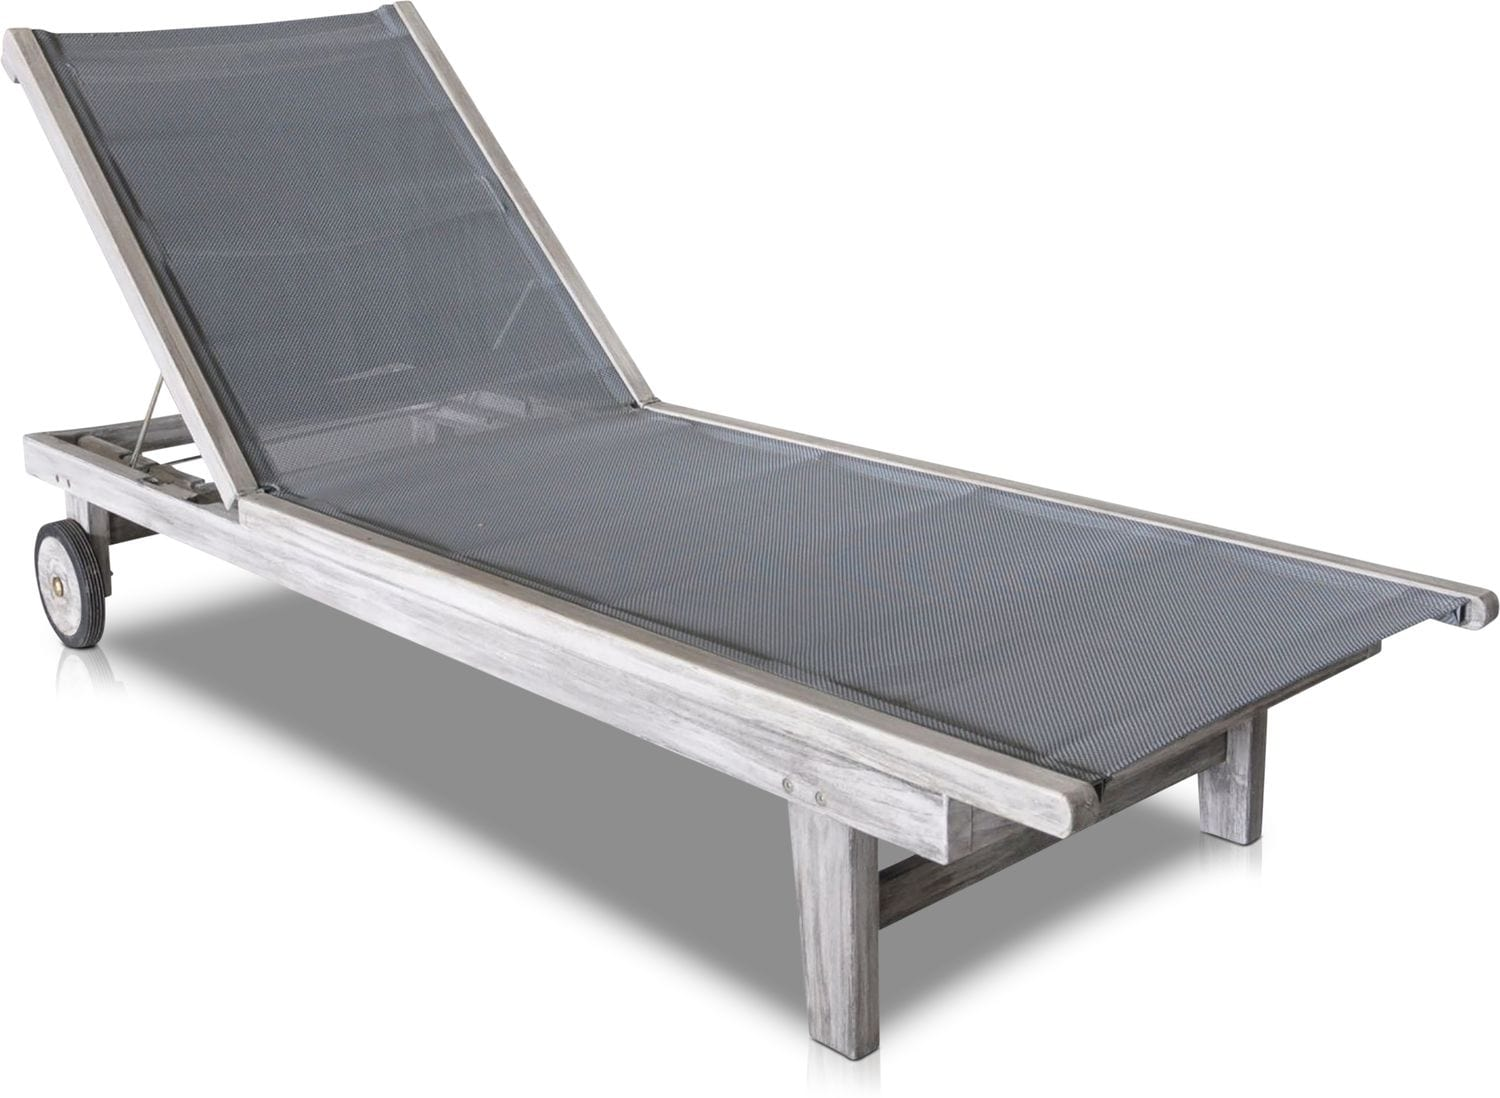 Outdoor Furniture - Grenada Outdoor Chaise Lounge